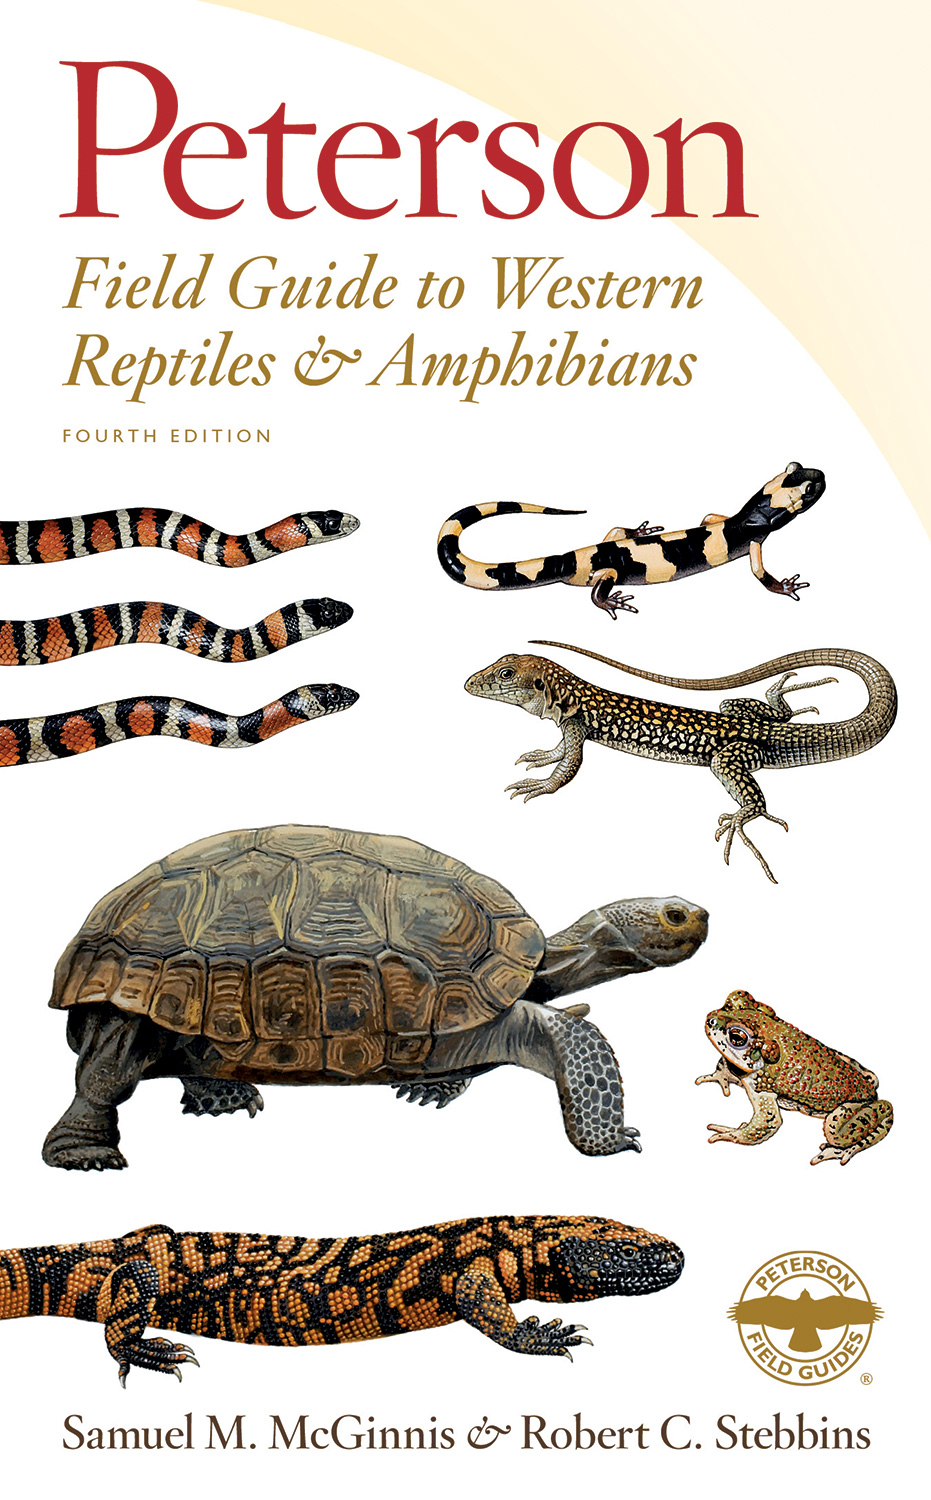 Peterson Field Guide to Western Reptiles & Amphibians, Fourth Edition-9781328715500